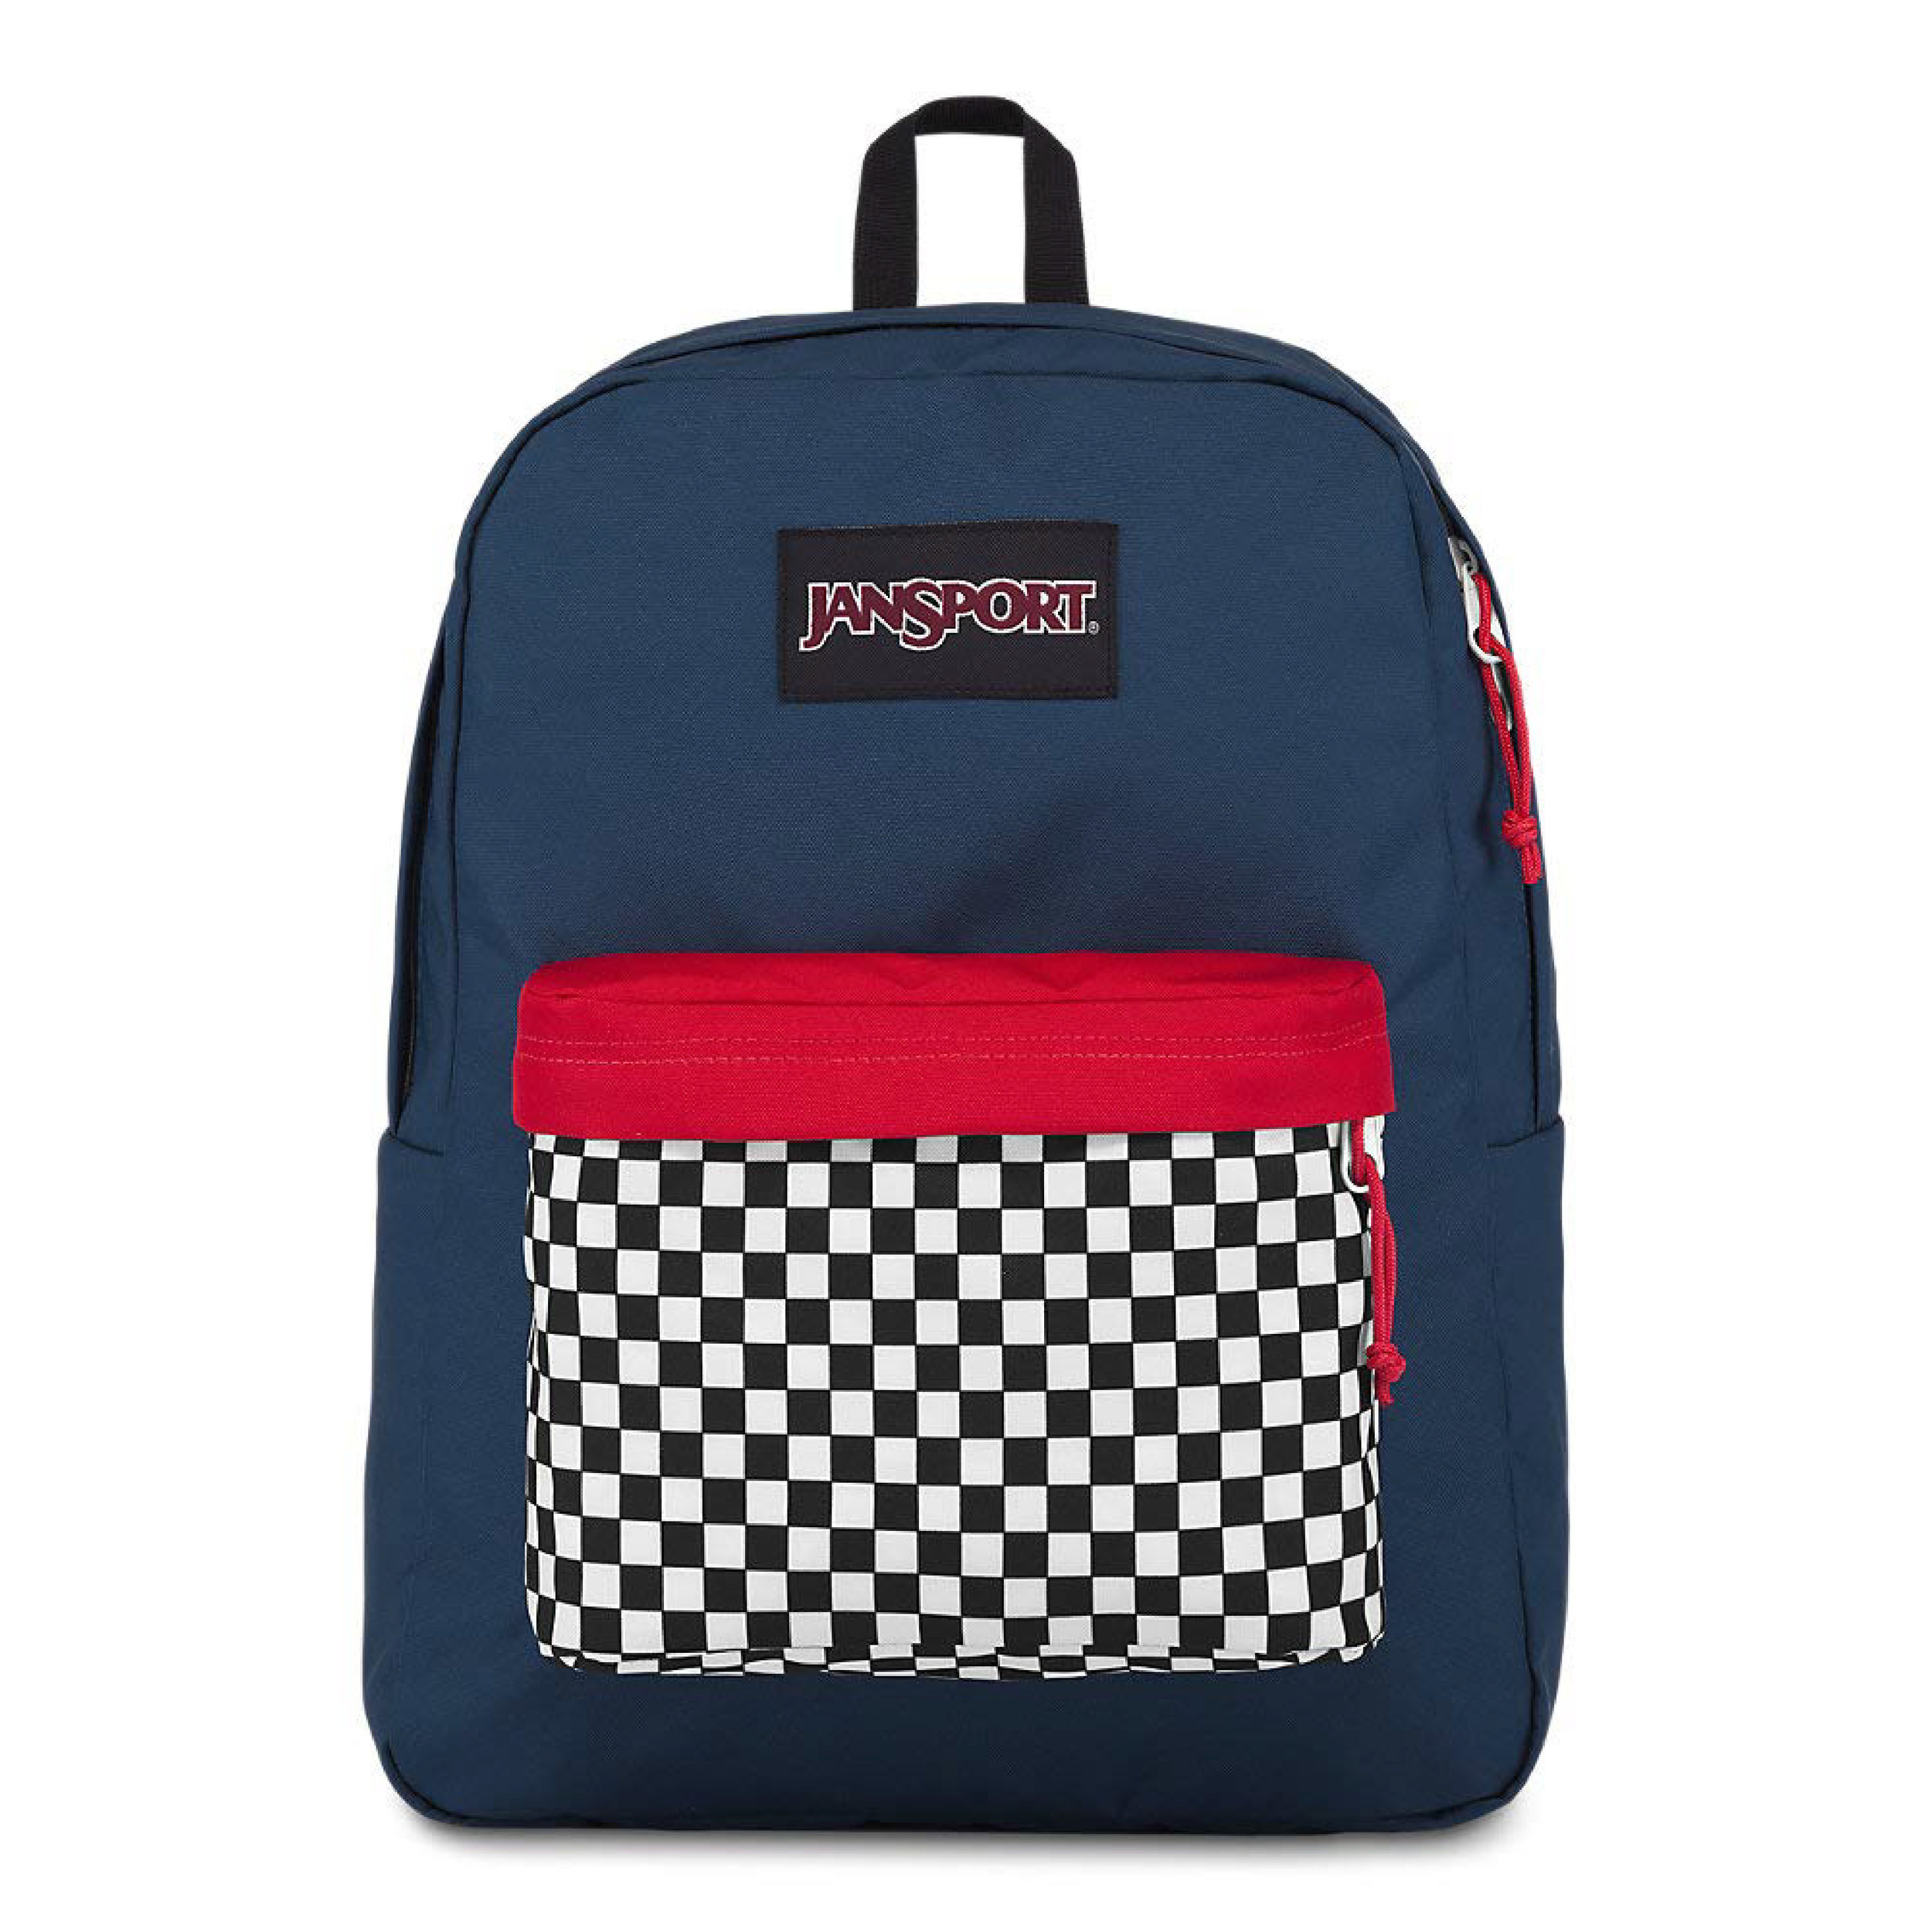 Jansport - The JanSport is a classic. Ashlee still has hers from high school and likes buying them for her kids because they come in a million colors and have a lifetime warranty- if anything happens to it you just simply mail it to JanSport and they will send you a brand new one of your choice.